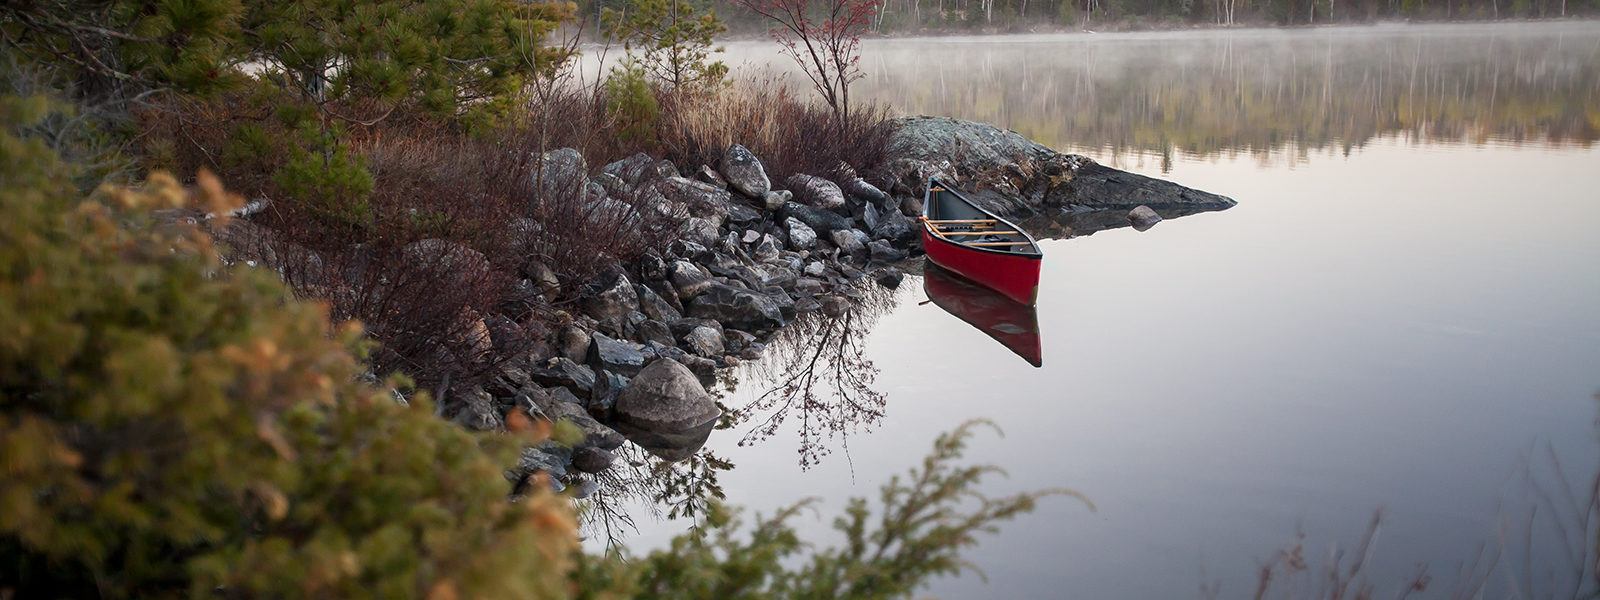 Red canoe on a lake